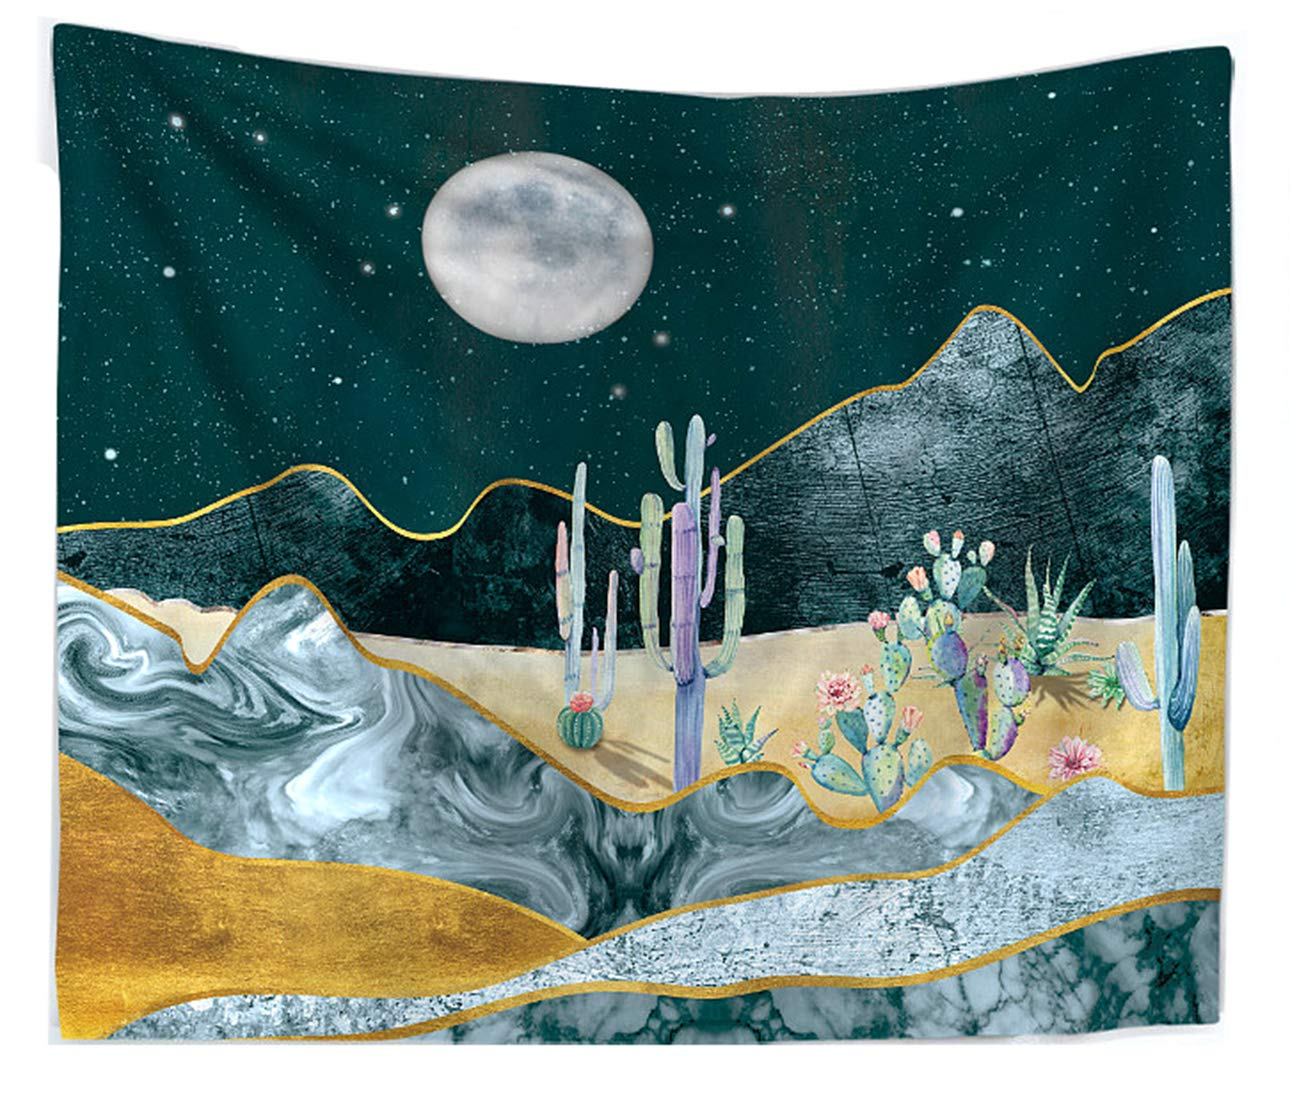 """LIGICKY Moon and Cactus Tapestry Nature Landscape Wall Hanging, Watercolor Mountain Desert Plant Printed Wall Art Tapestries Home Decor for Living Room Bedroom Dorm, 78.7"""" x 58.3"""""""